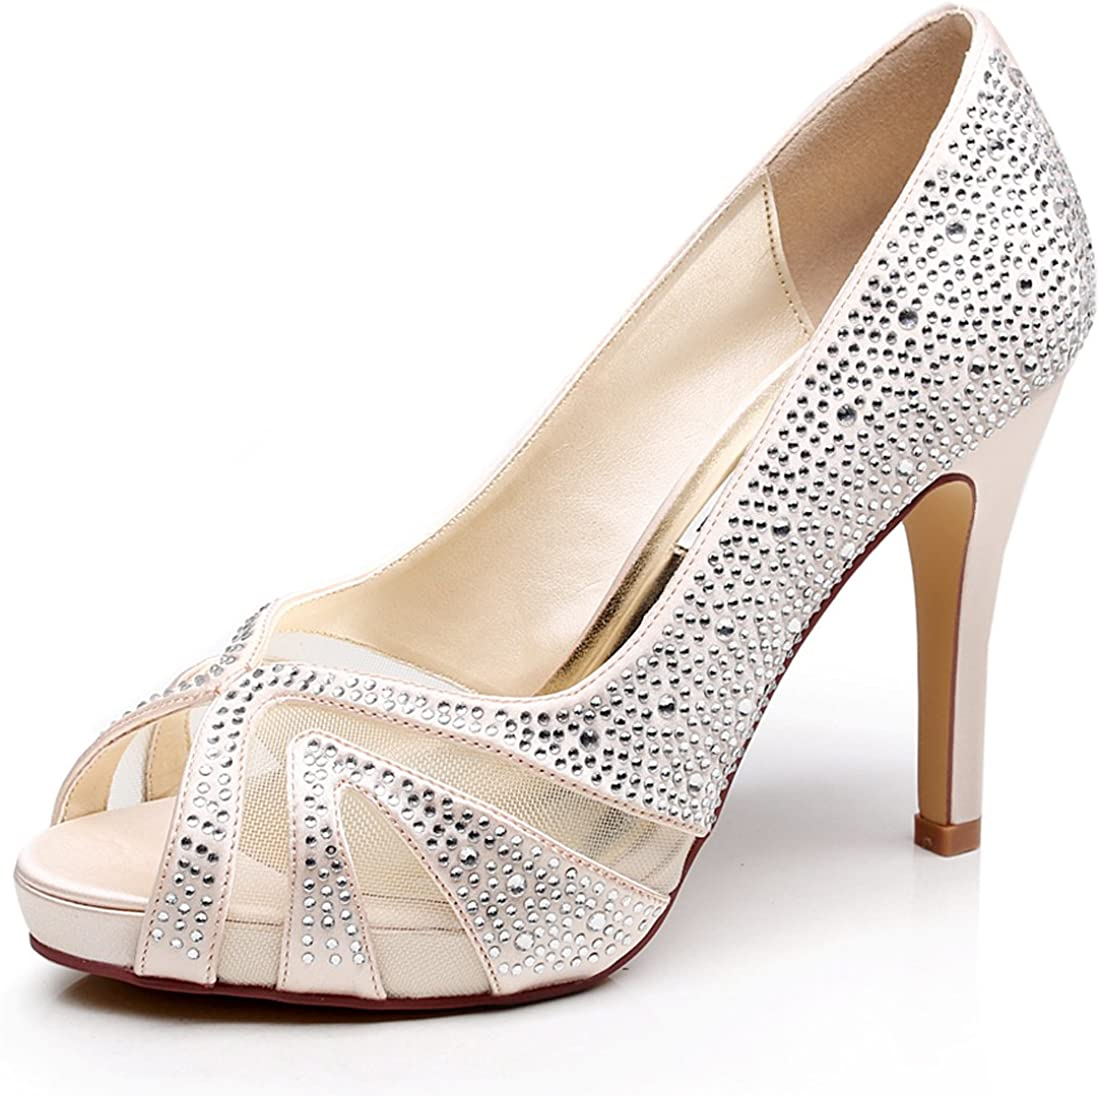 Bridal Shoes in Silver